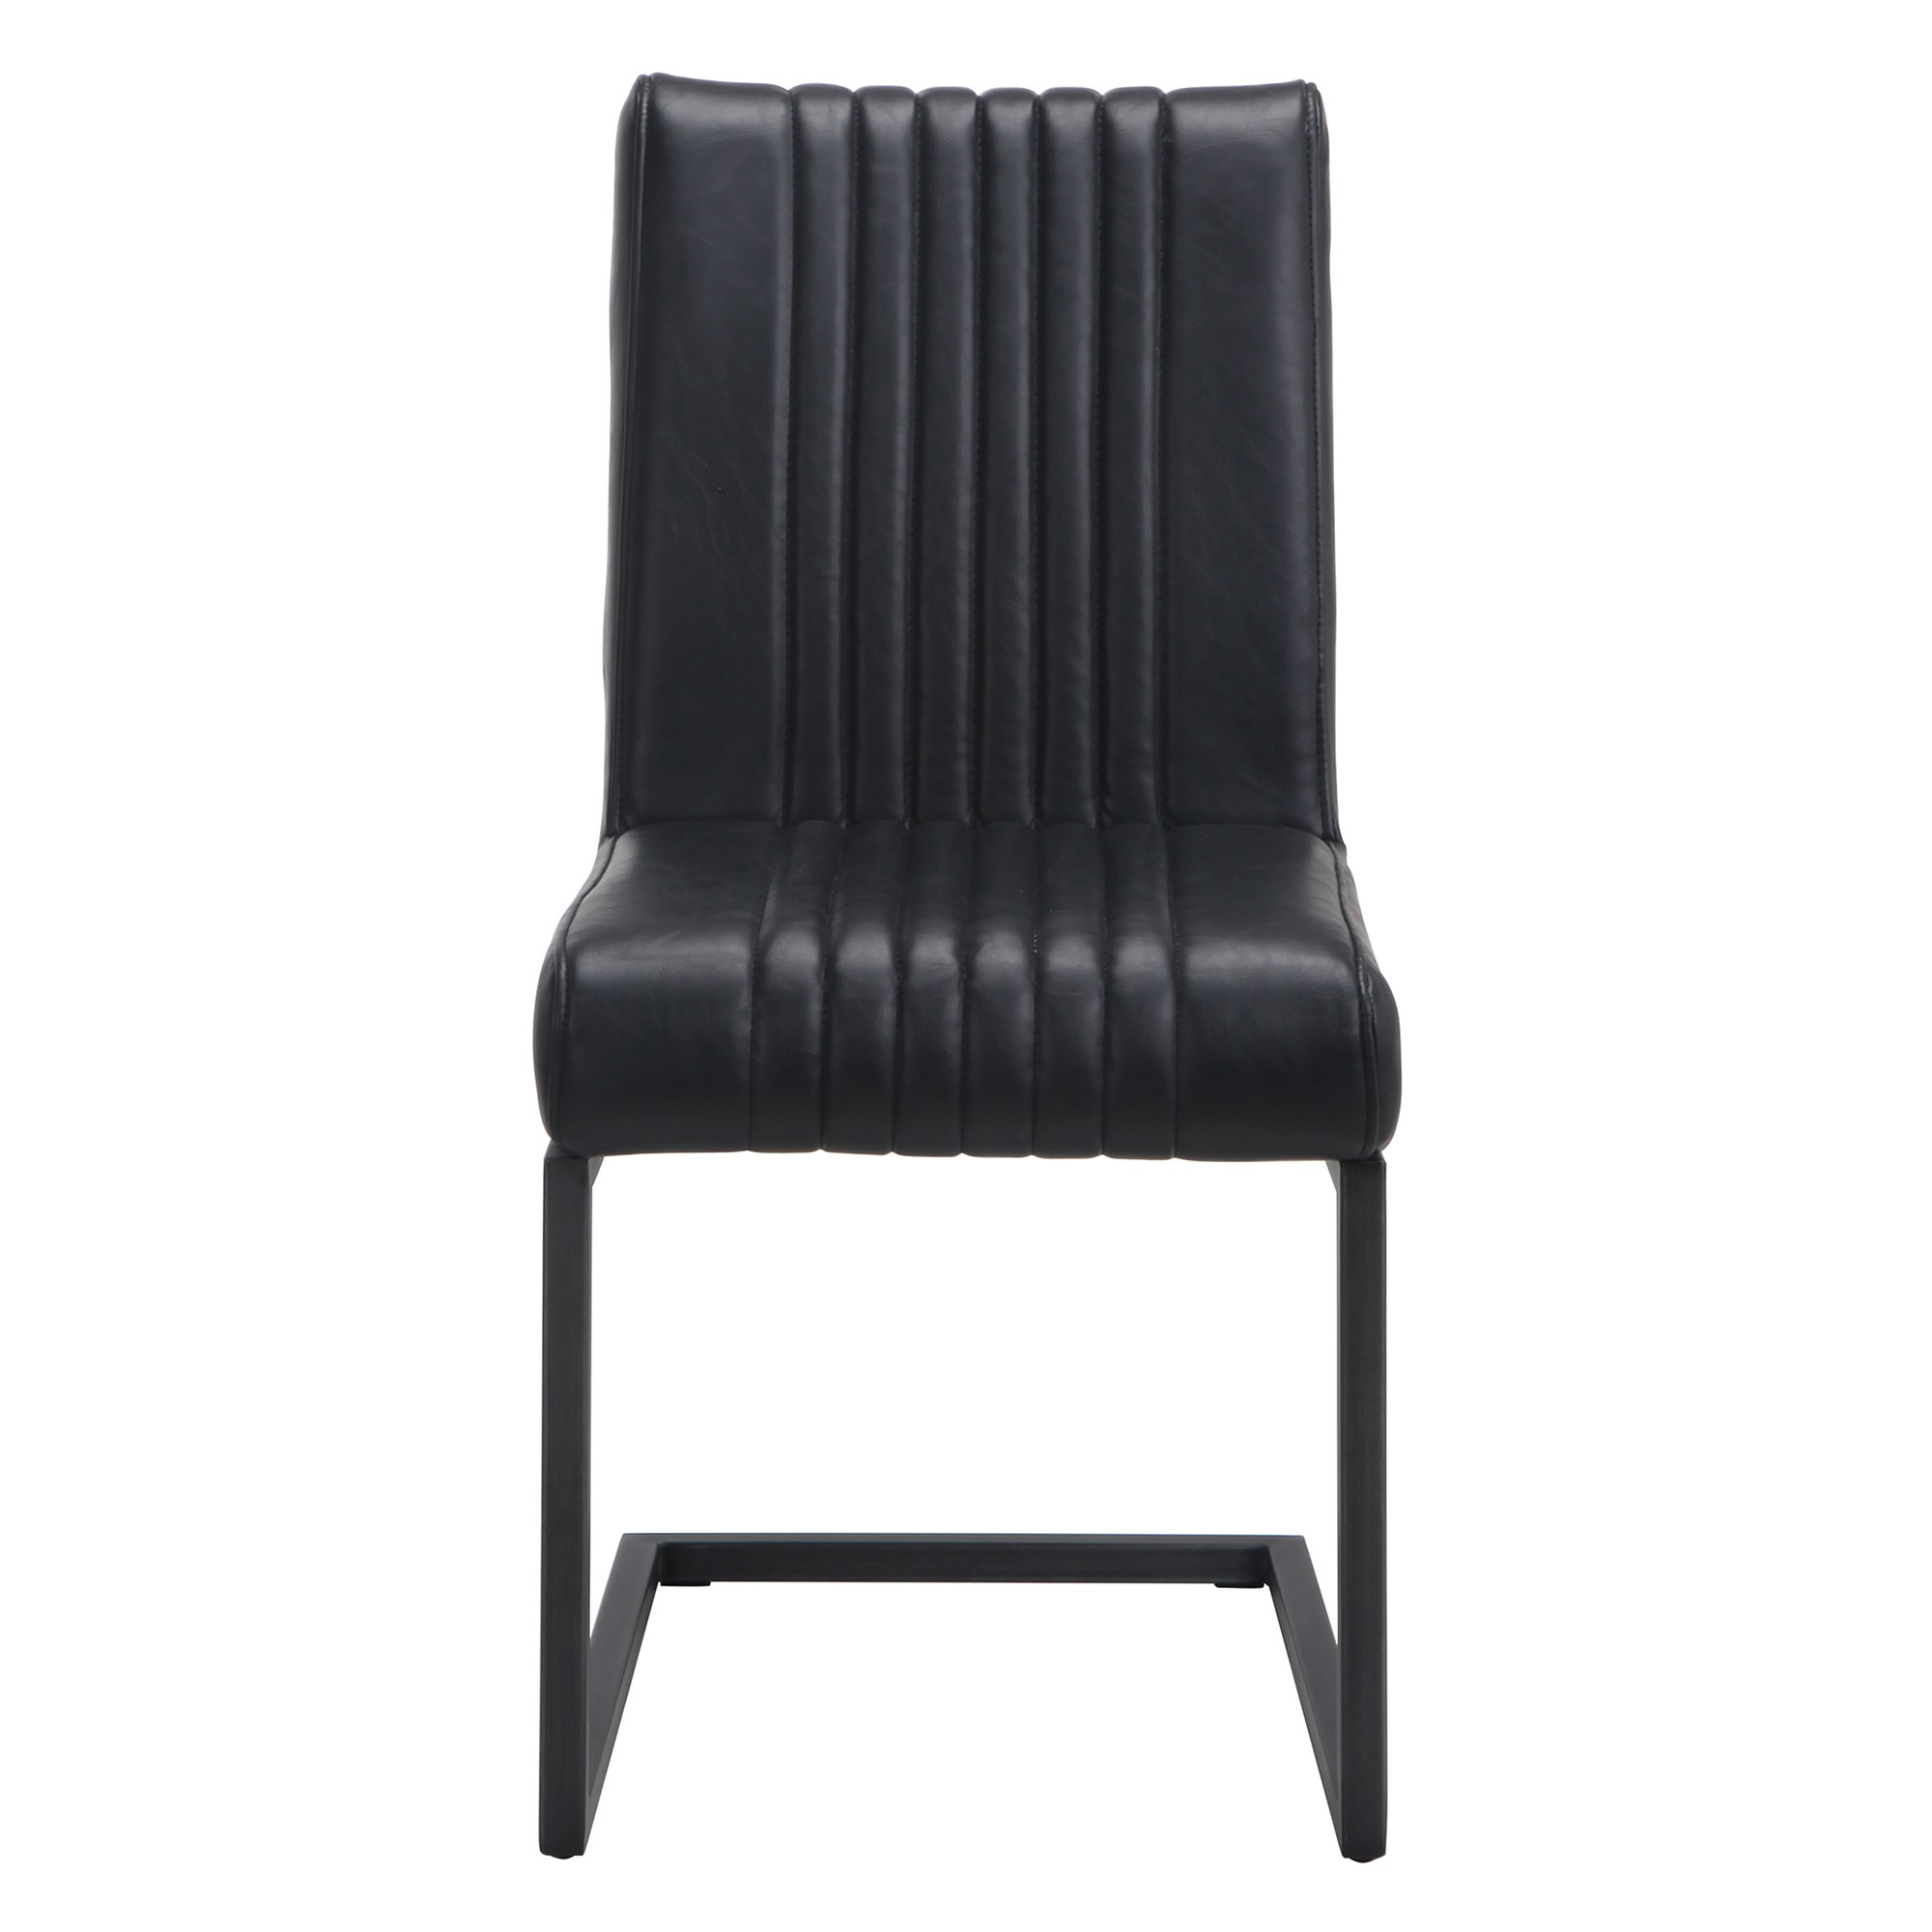 Callahan Faux Leather Dining Chair, Black